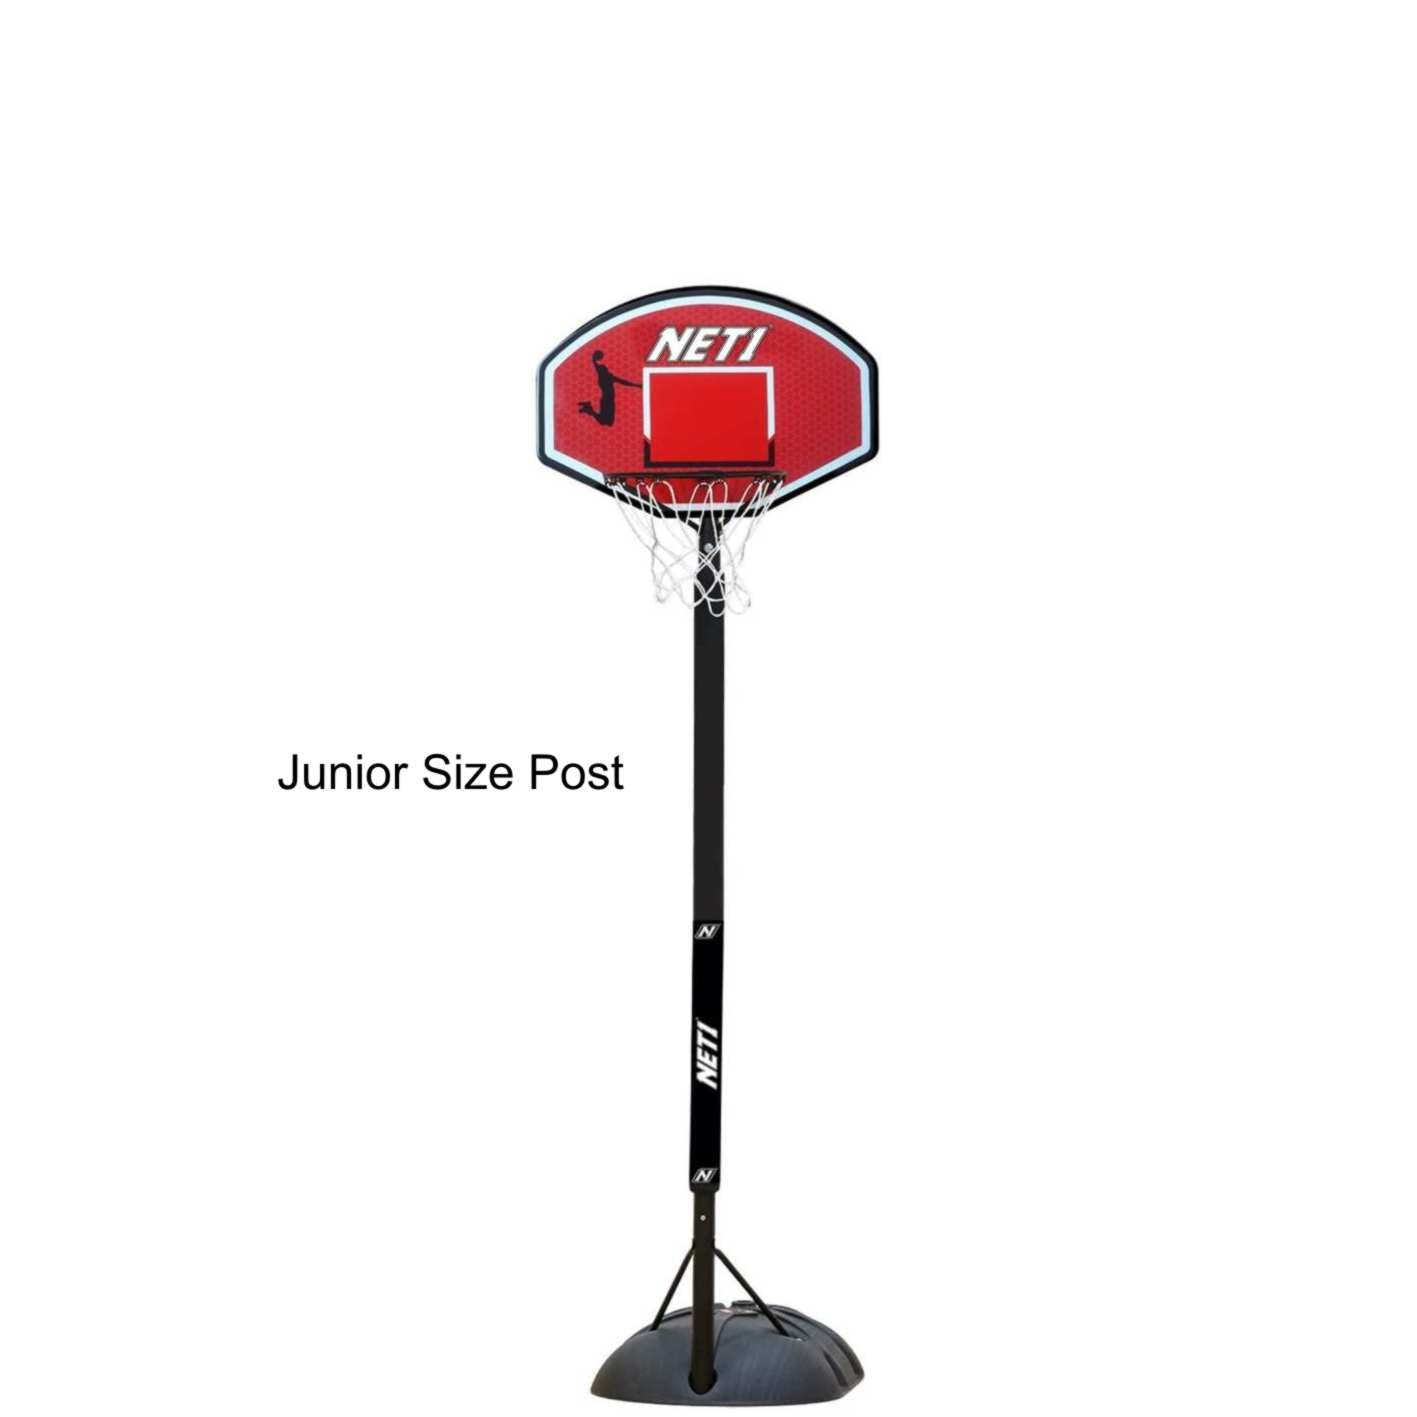 NET1 Junior Xplode Portable Basketball System N1-N123201